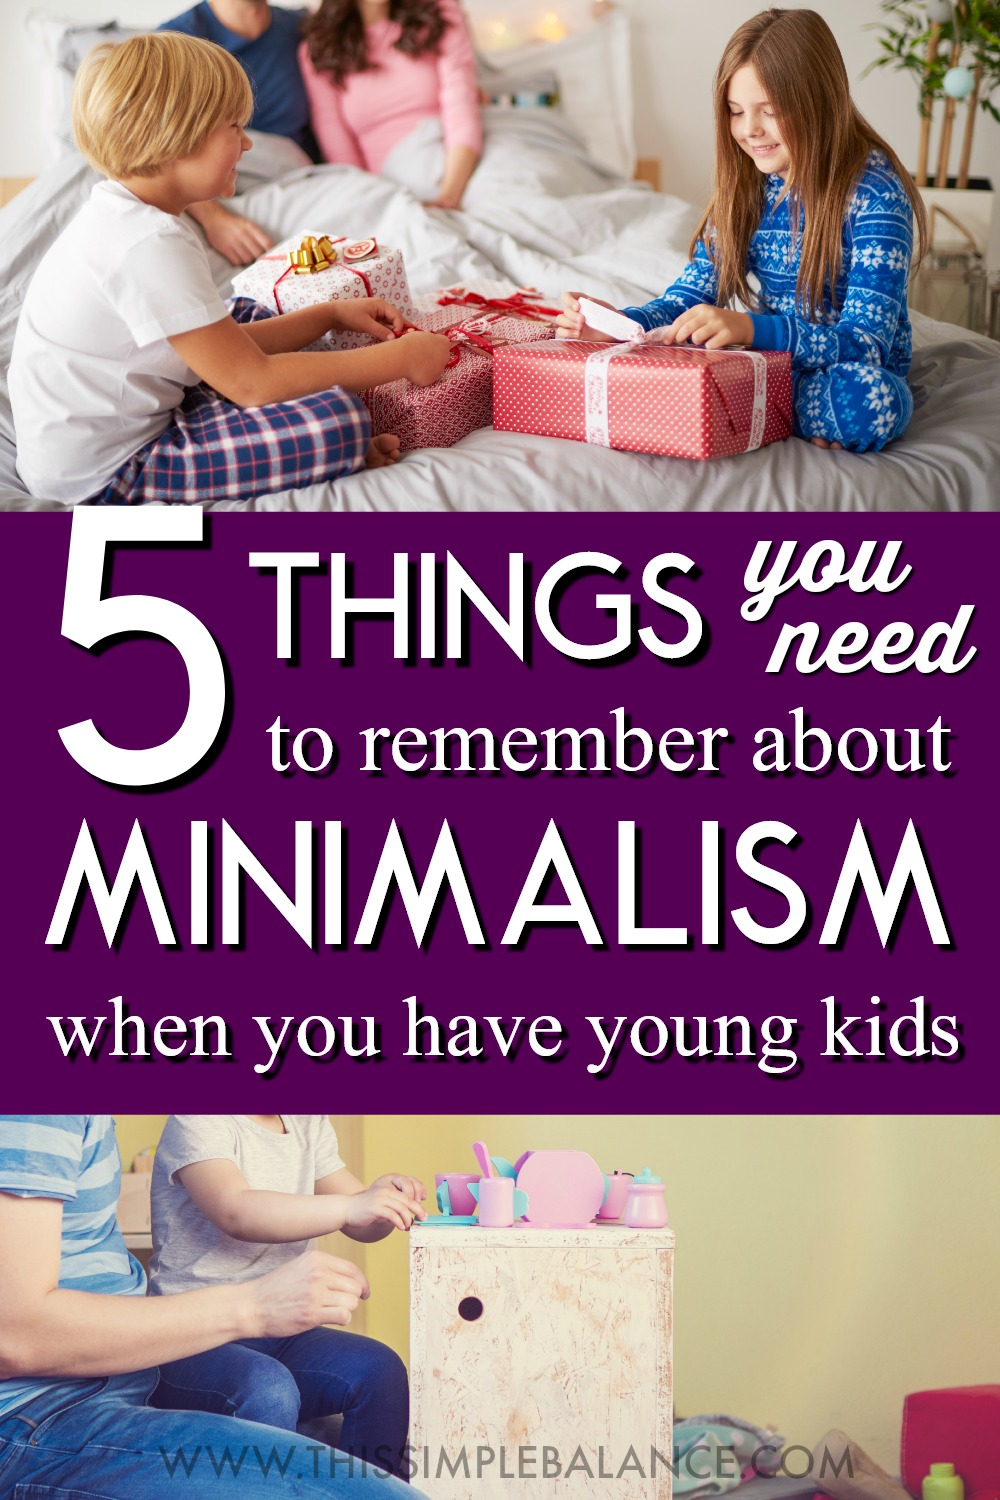 If you became a minimalist after having kids, figuring out how to actually do minimalism with kids can be tricky - it can even lead to disillusionment with minimalism. Moms trying to live a minimalist lifestyle with kids need to keep these 5 things in mind. #minimalismwithkids #minimalist